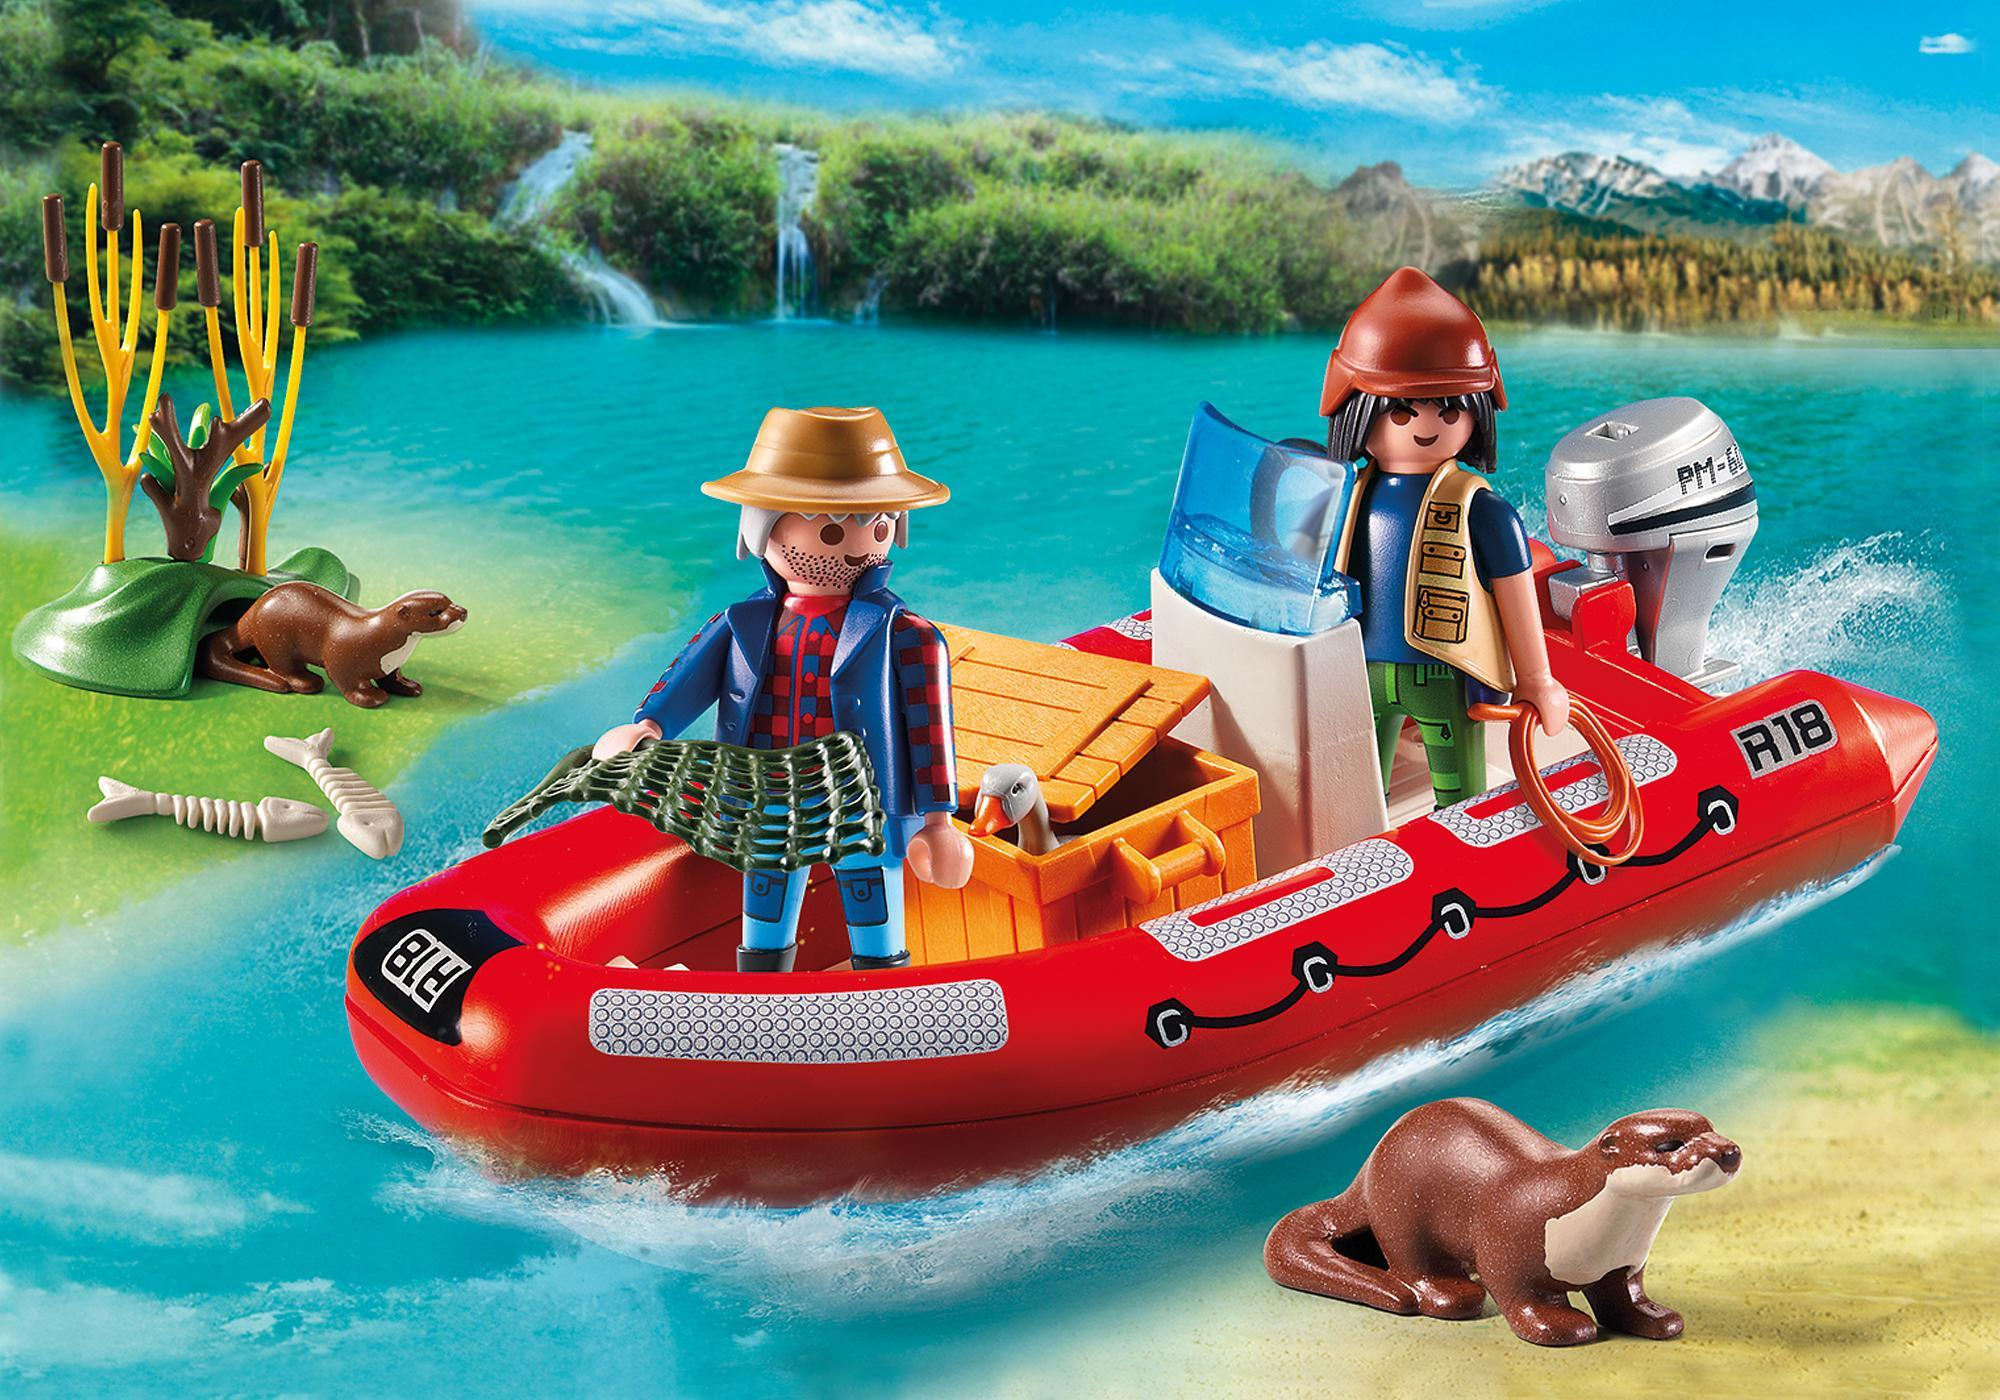 5559_product_detail/Inflatable Boat with Explorers